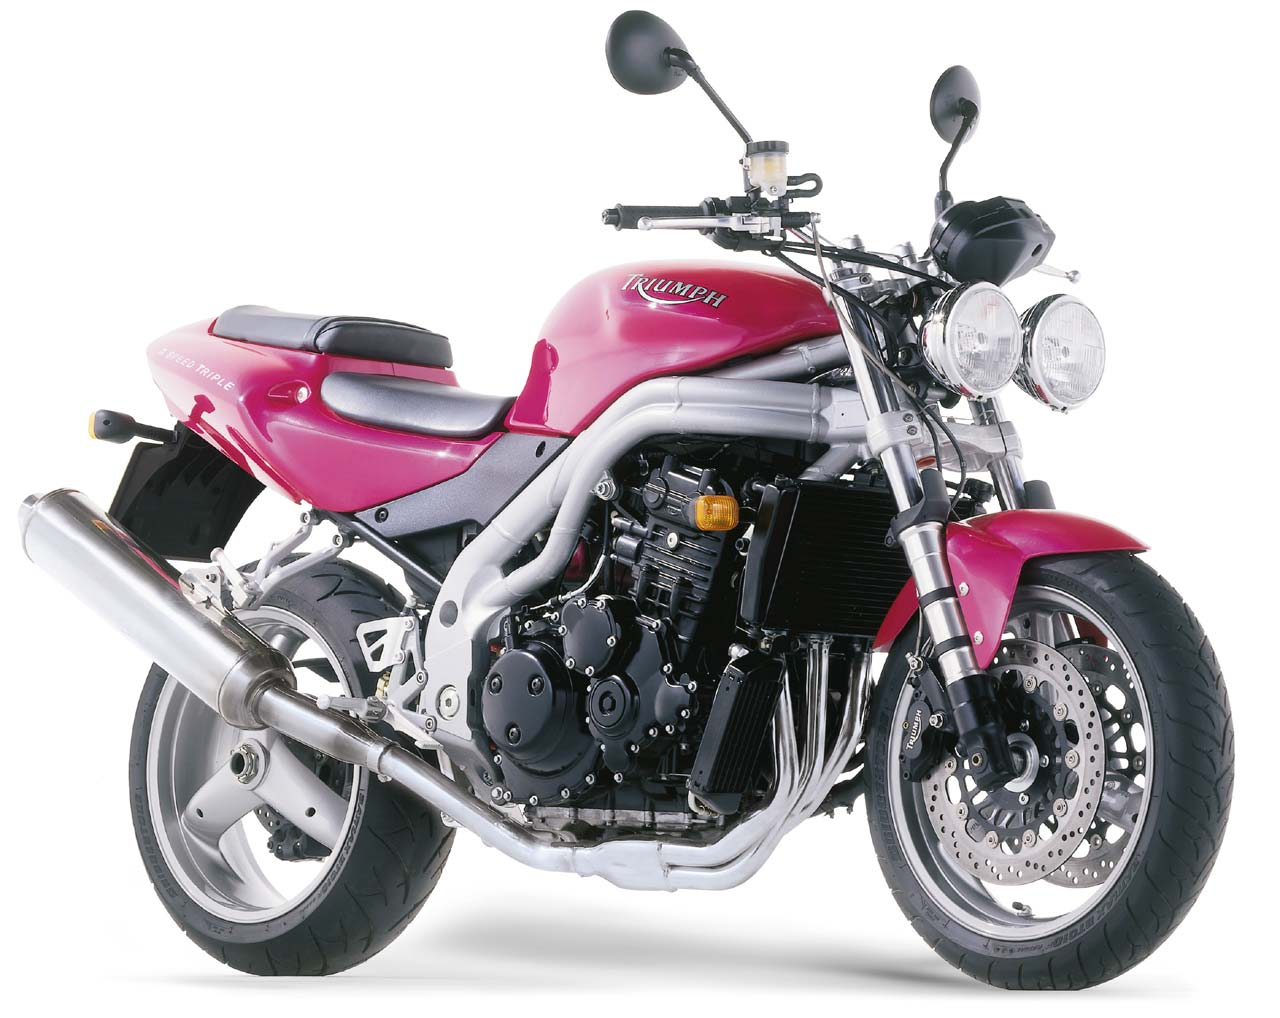 Triumph Speed Four 2002 images #159499